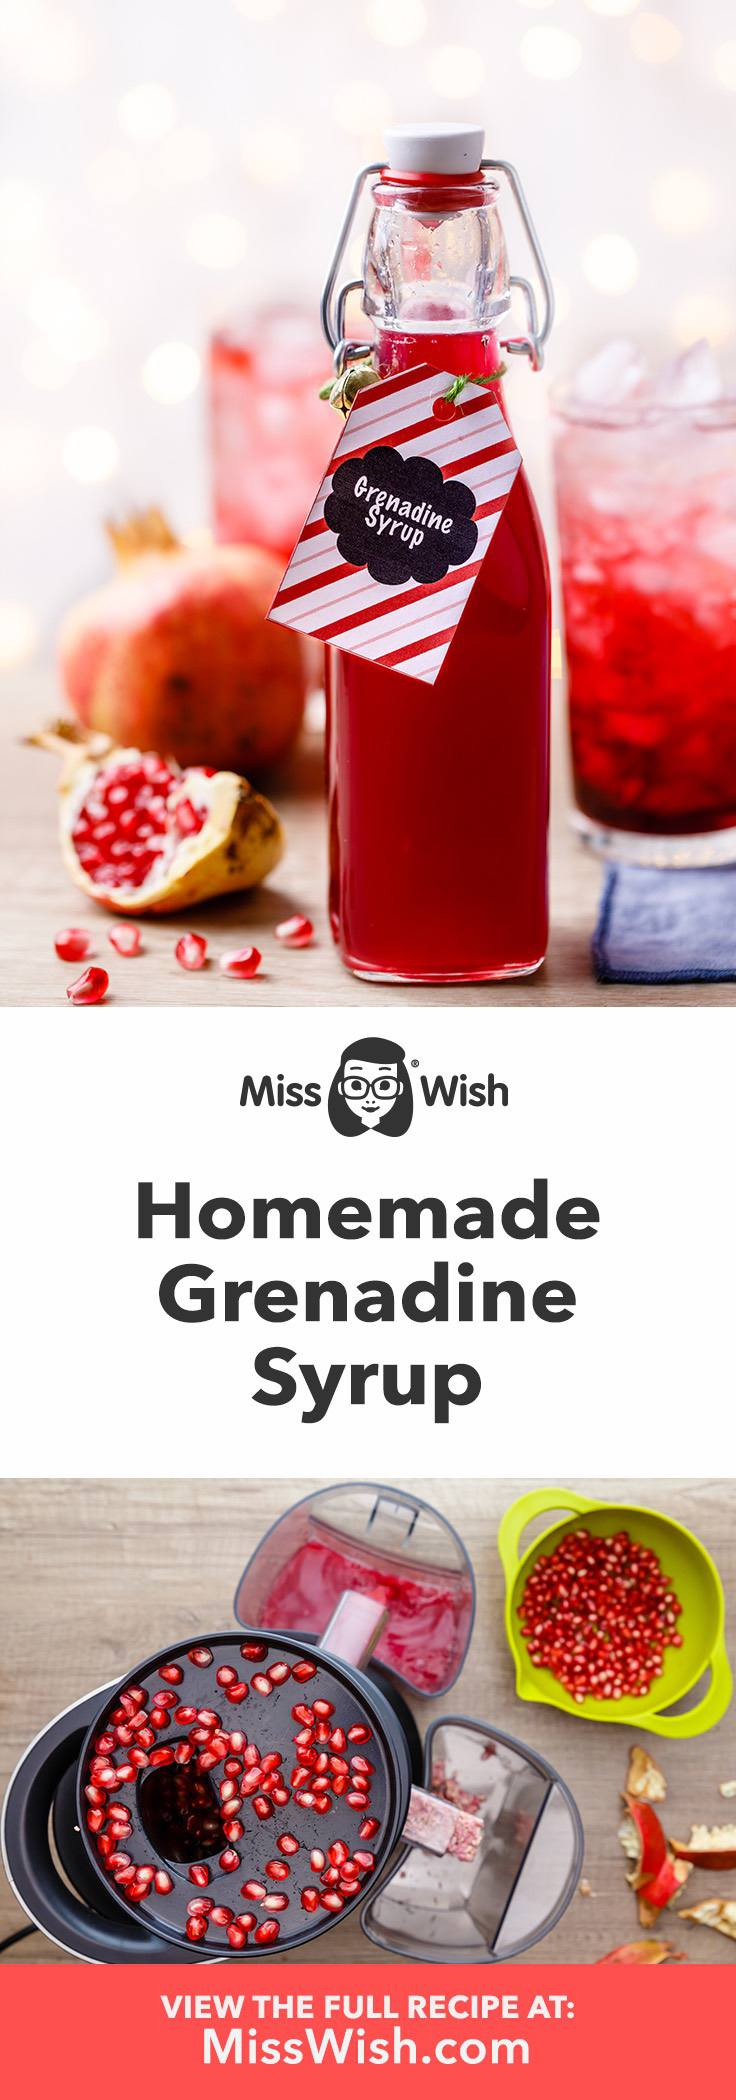 How to make the best homemade grenadine syrup for incredible grenadine drinks.